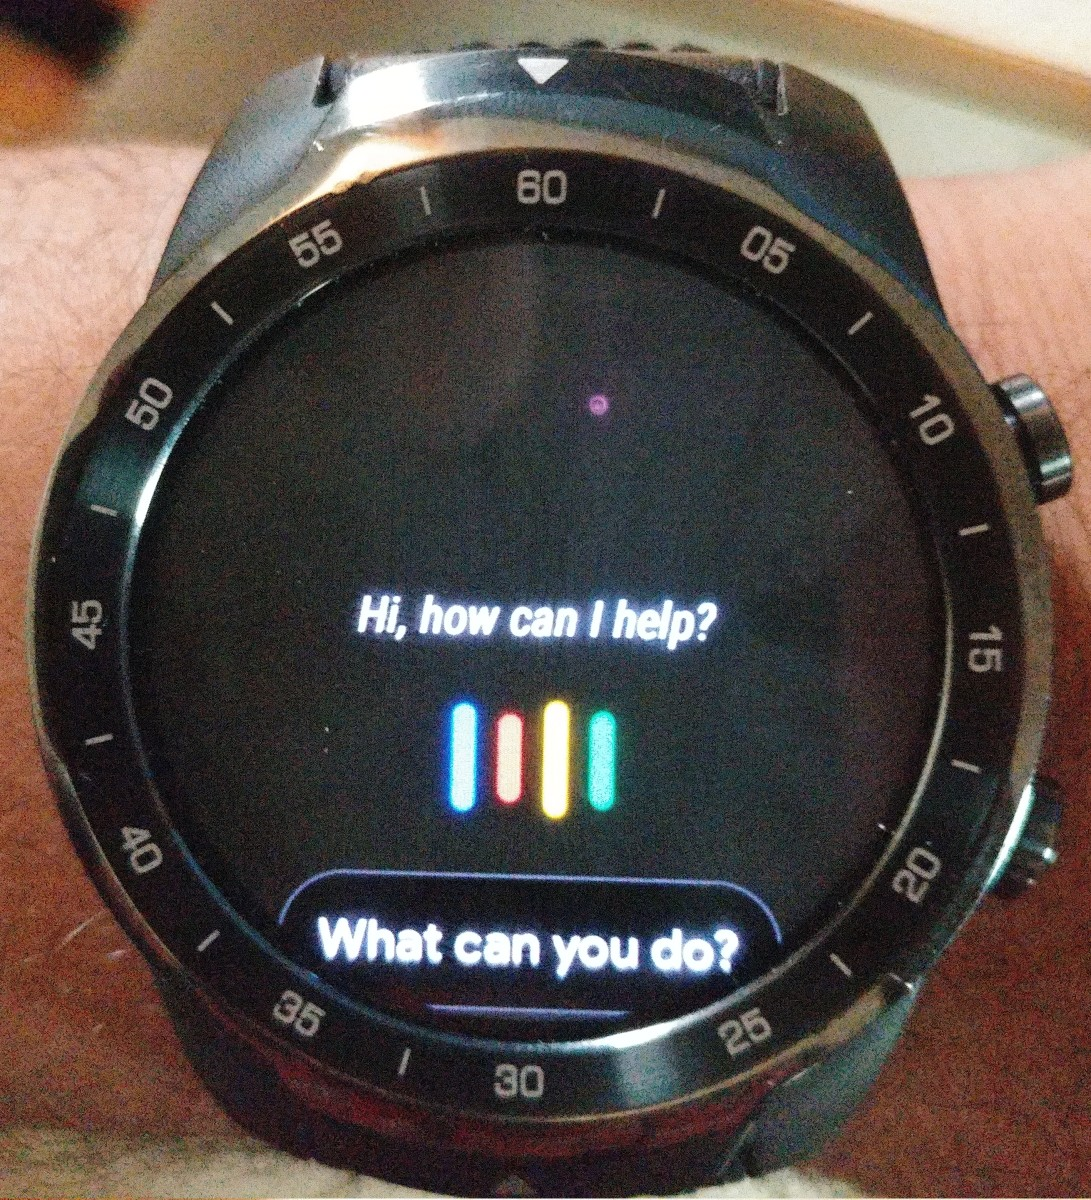 This is the Google Assistant APP on the TicWatch Pro.